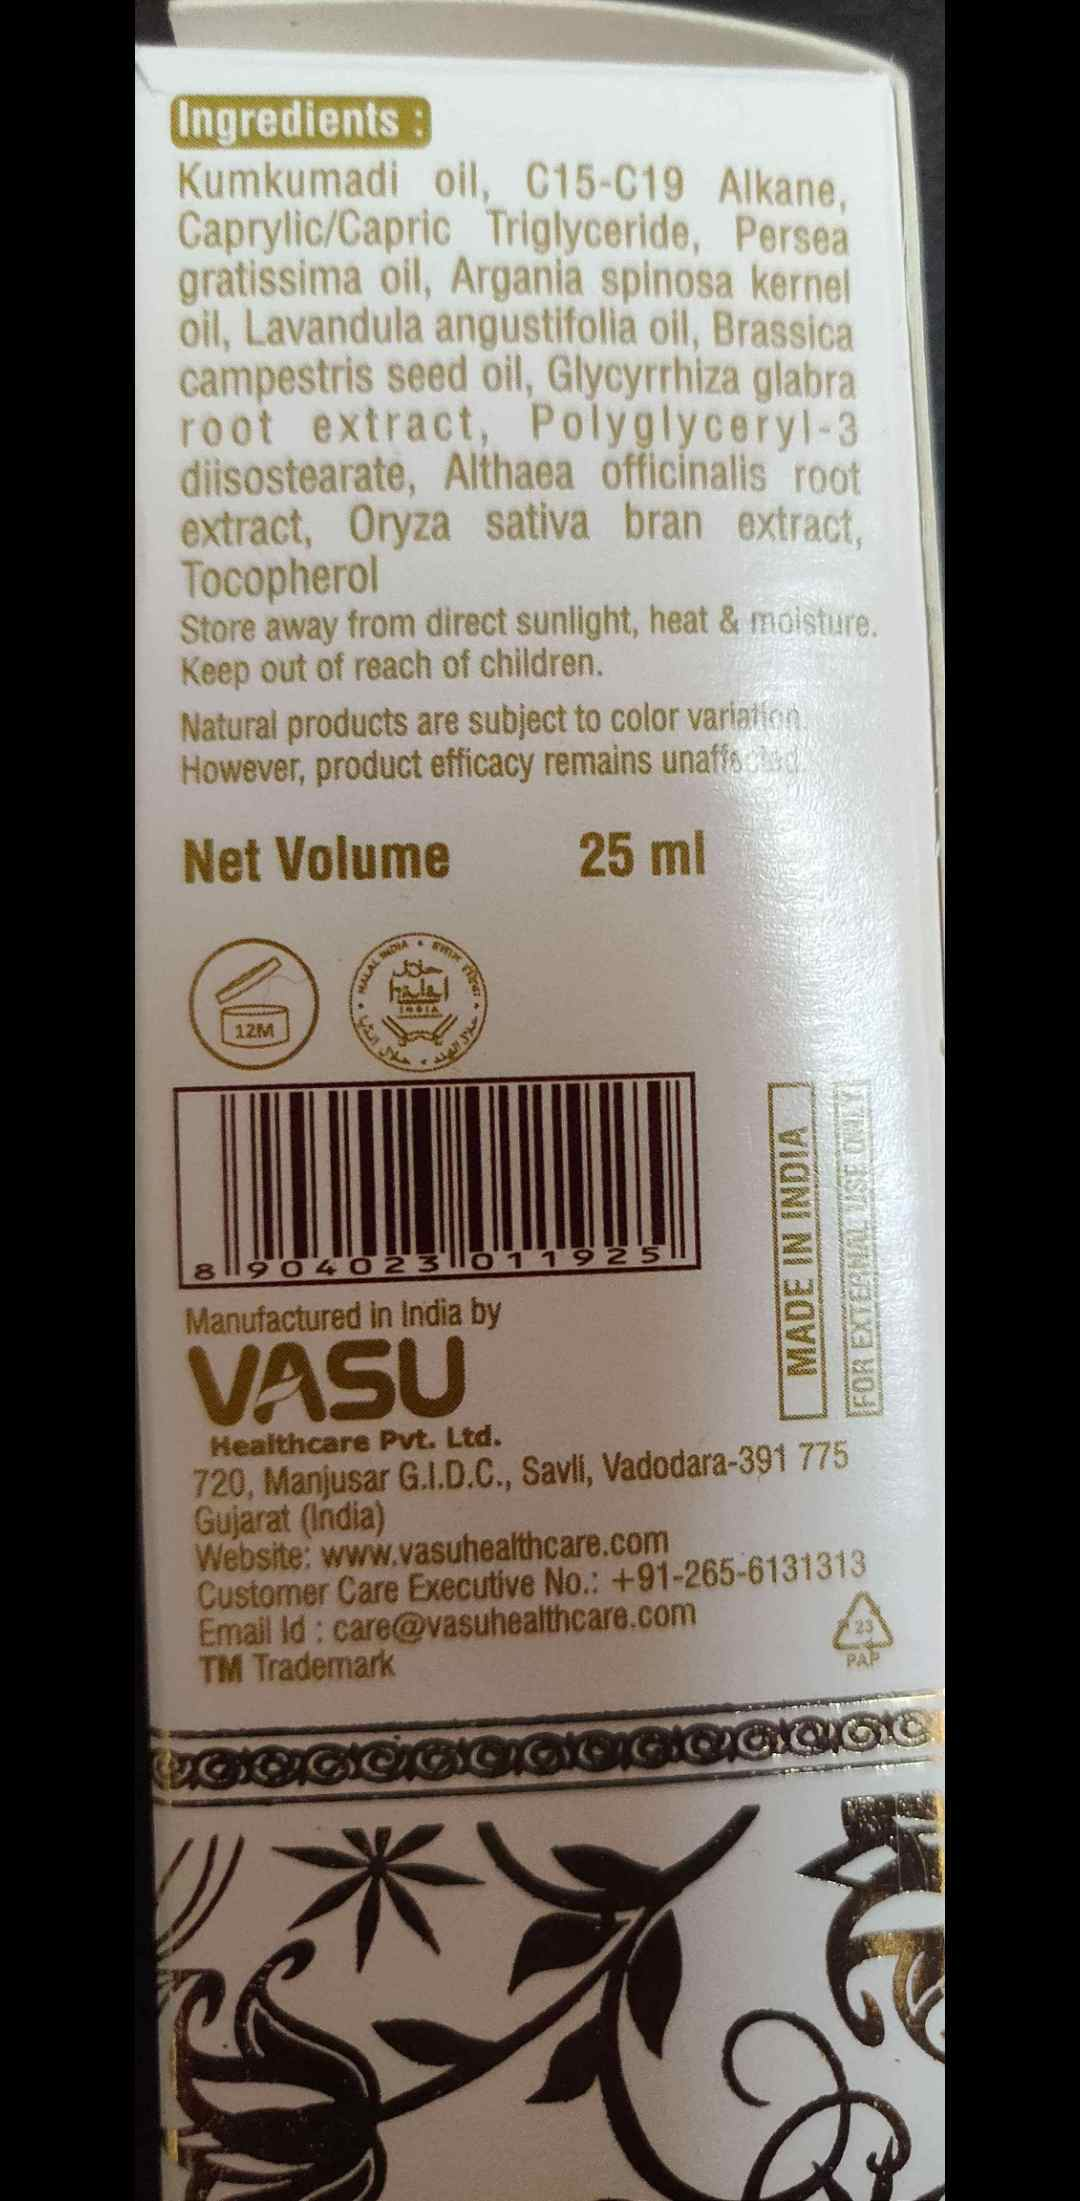 vasu facial beauty oil ingredients